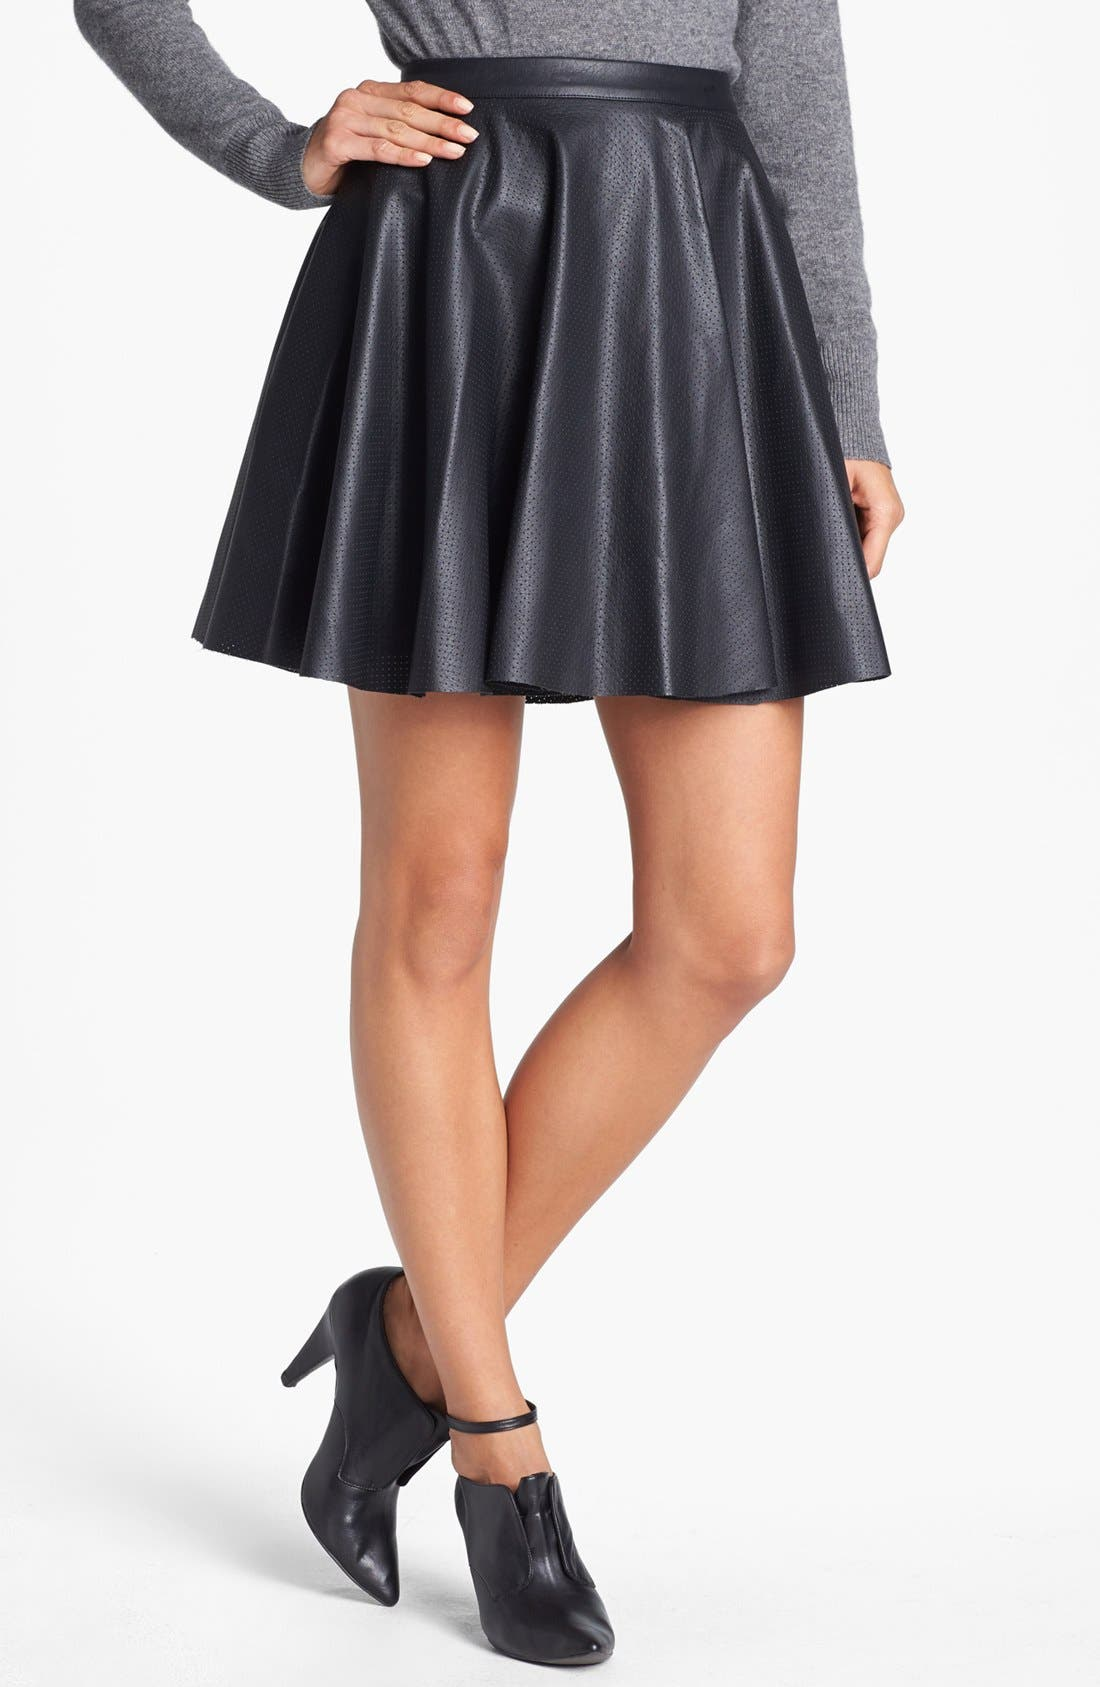 Alternate Image 1 Selected - Vince Camuto Perforated Faux Leather Skater Miniskirt